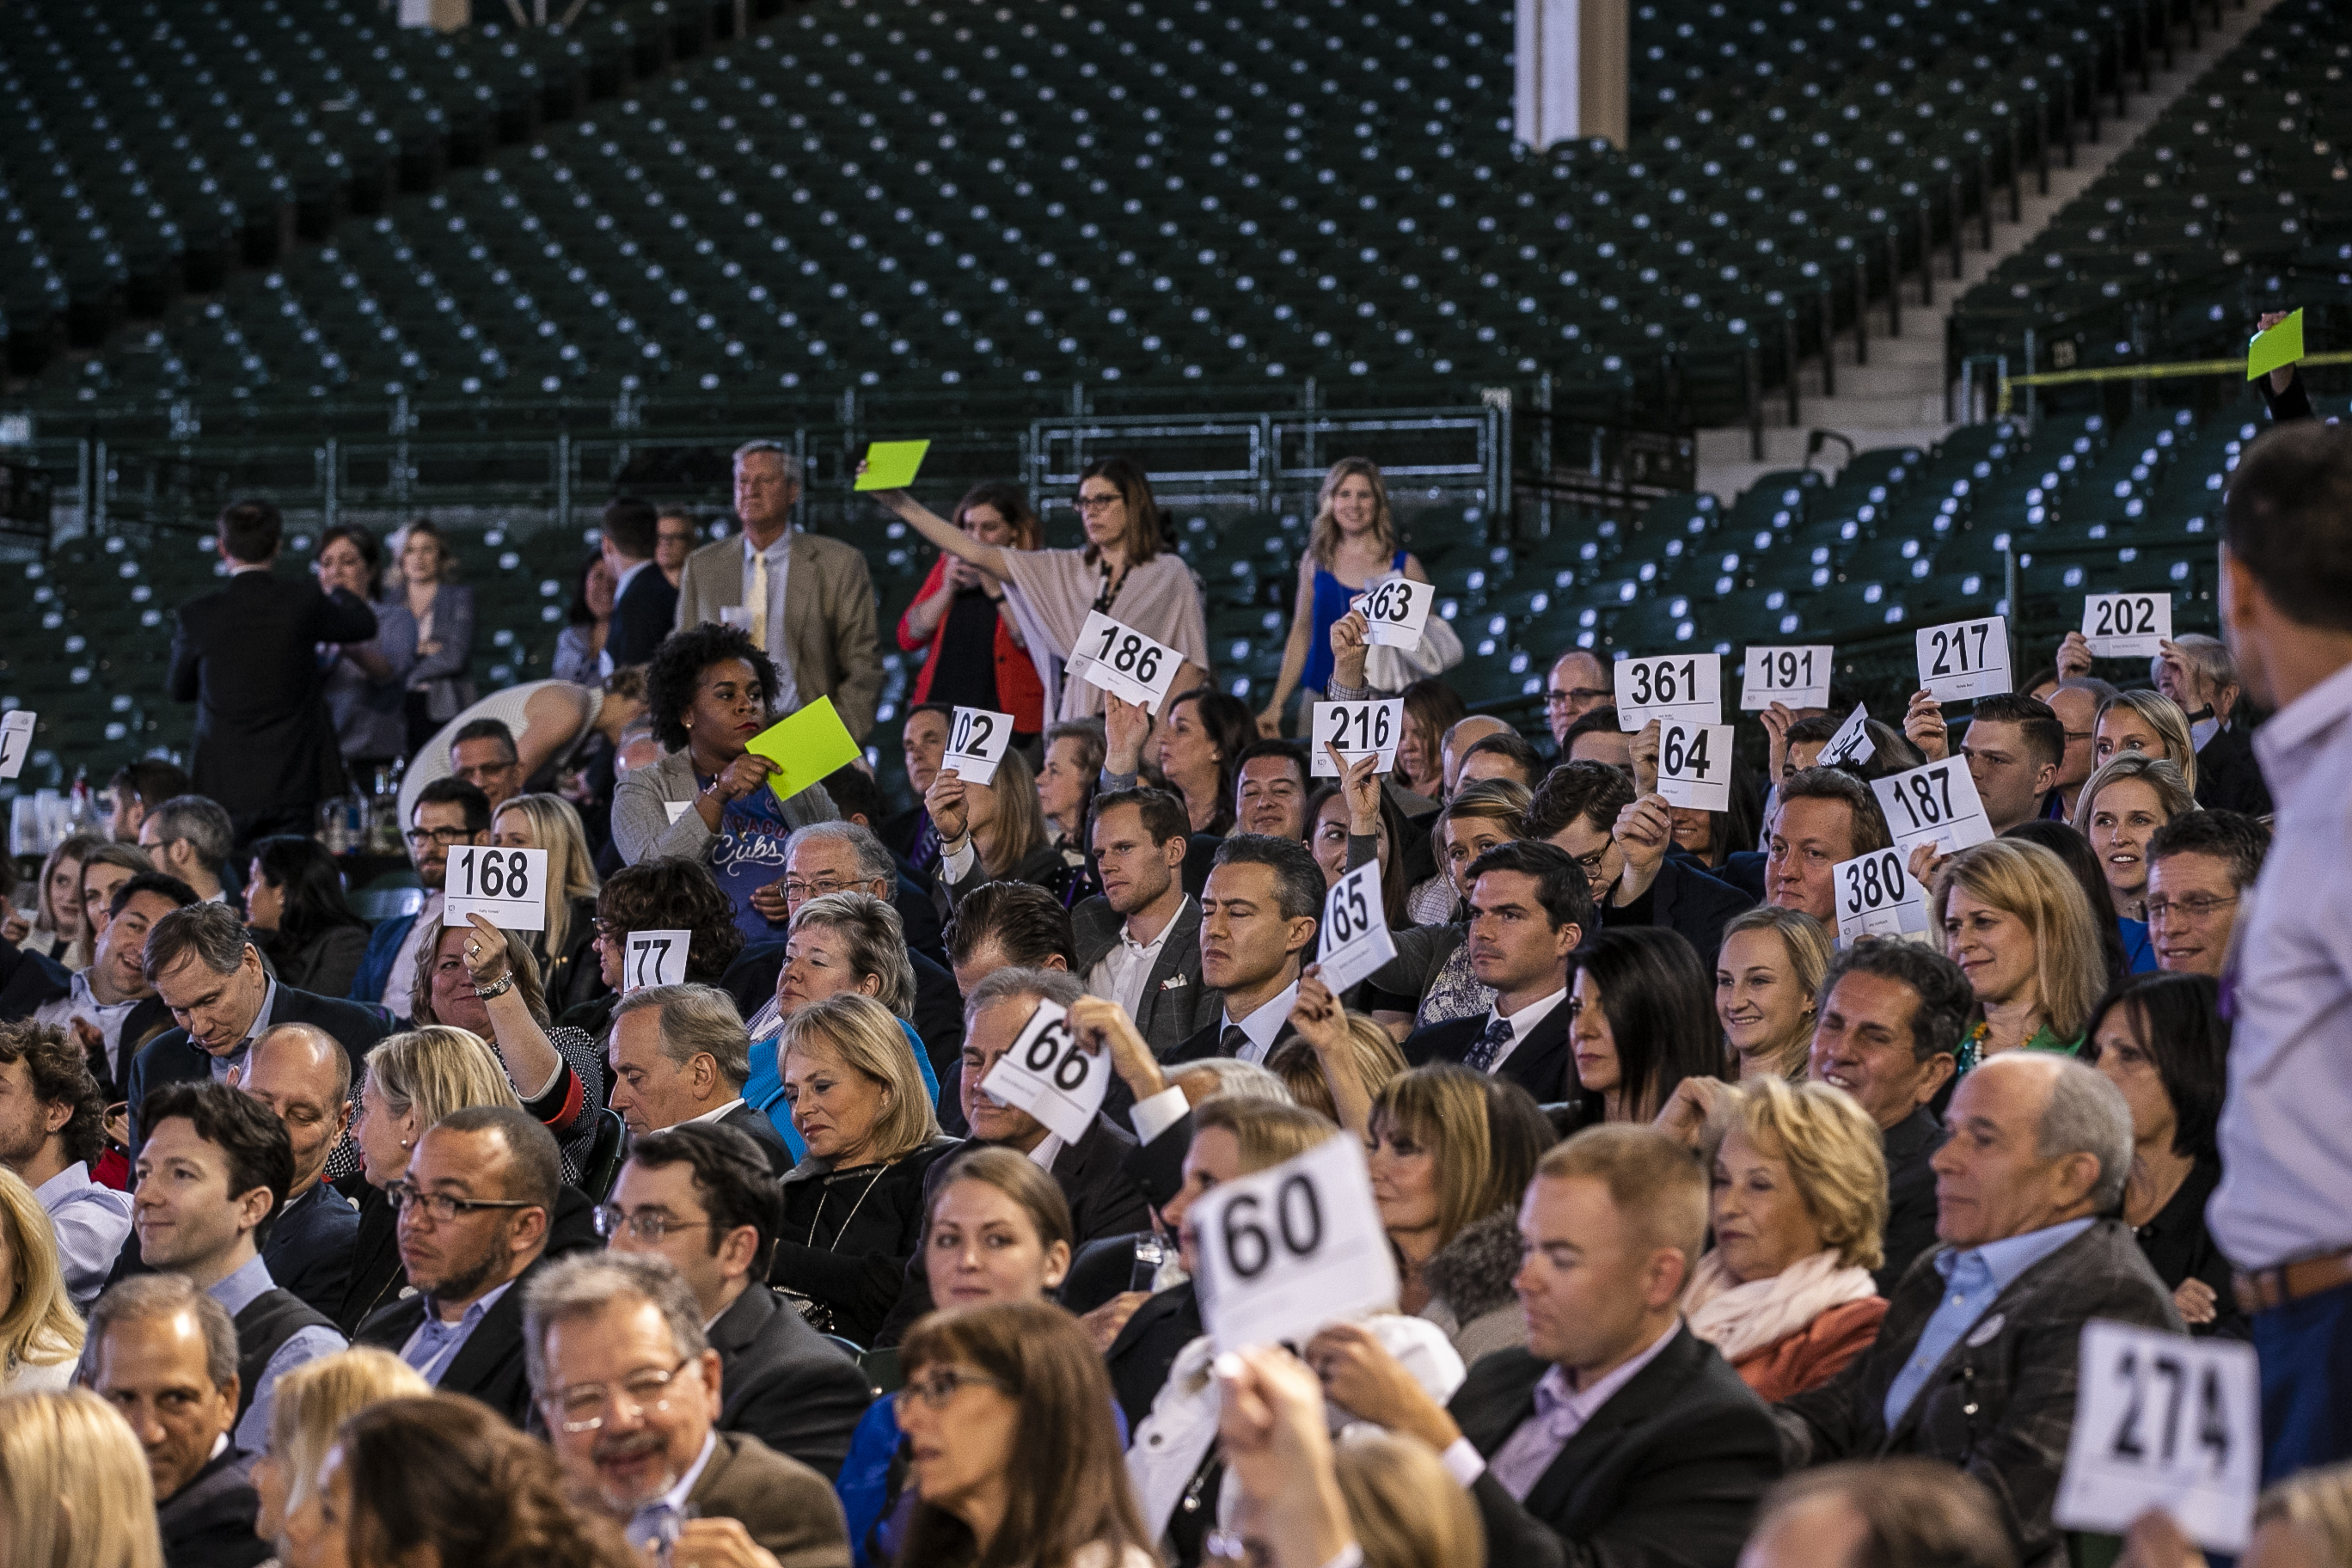 Gala guests bidding at the auction in the Wrigley Field stadium